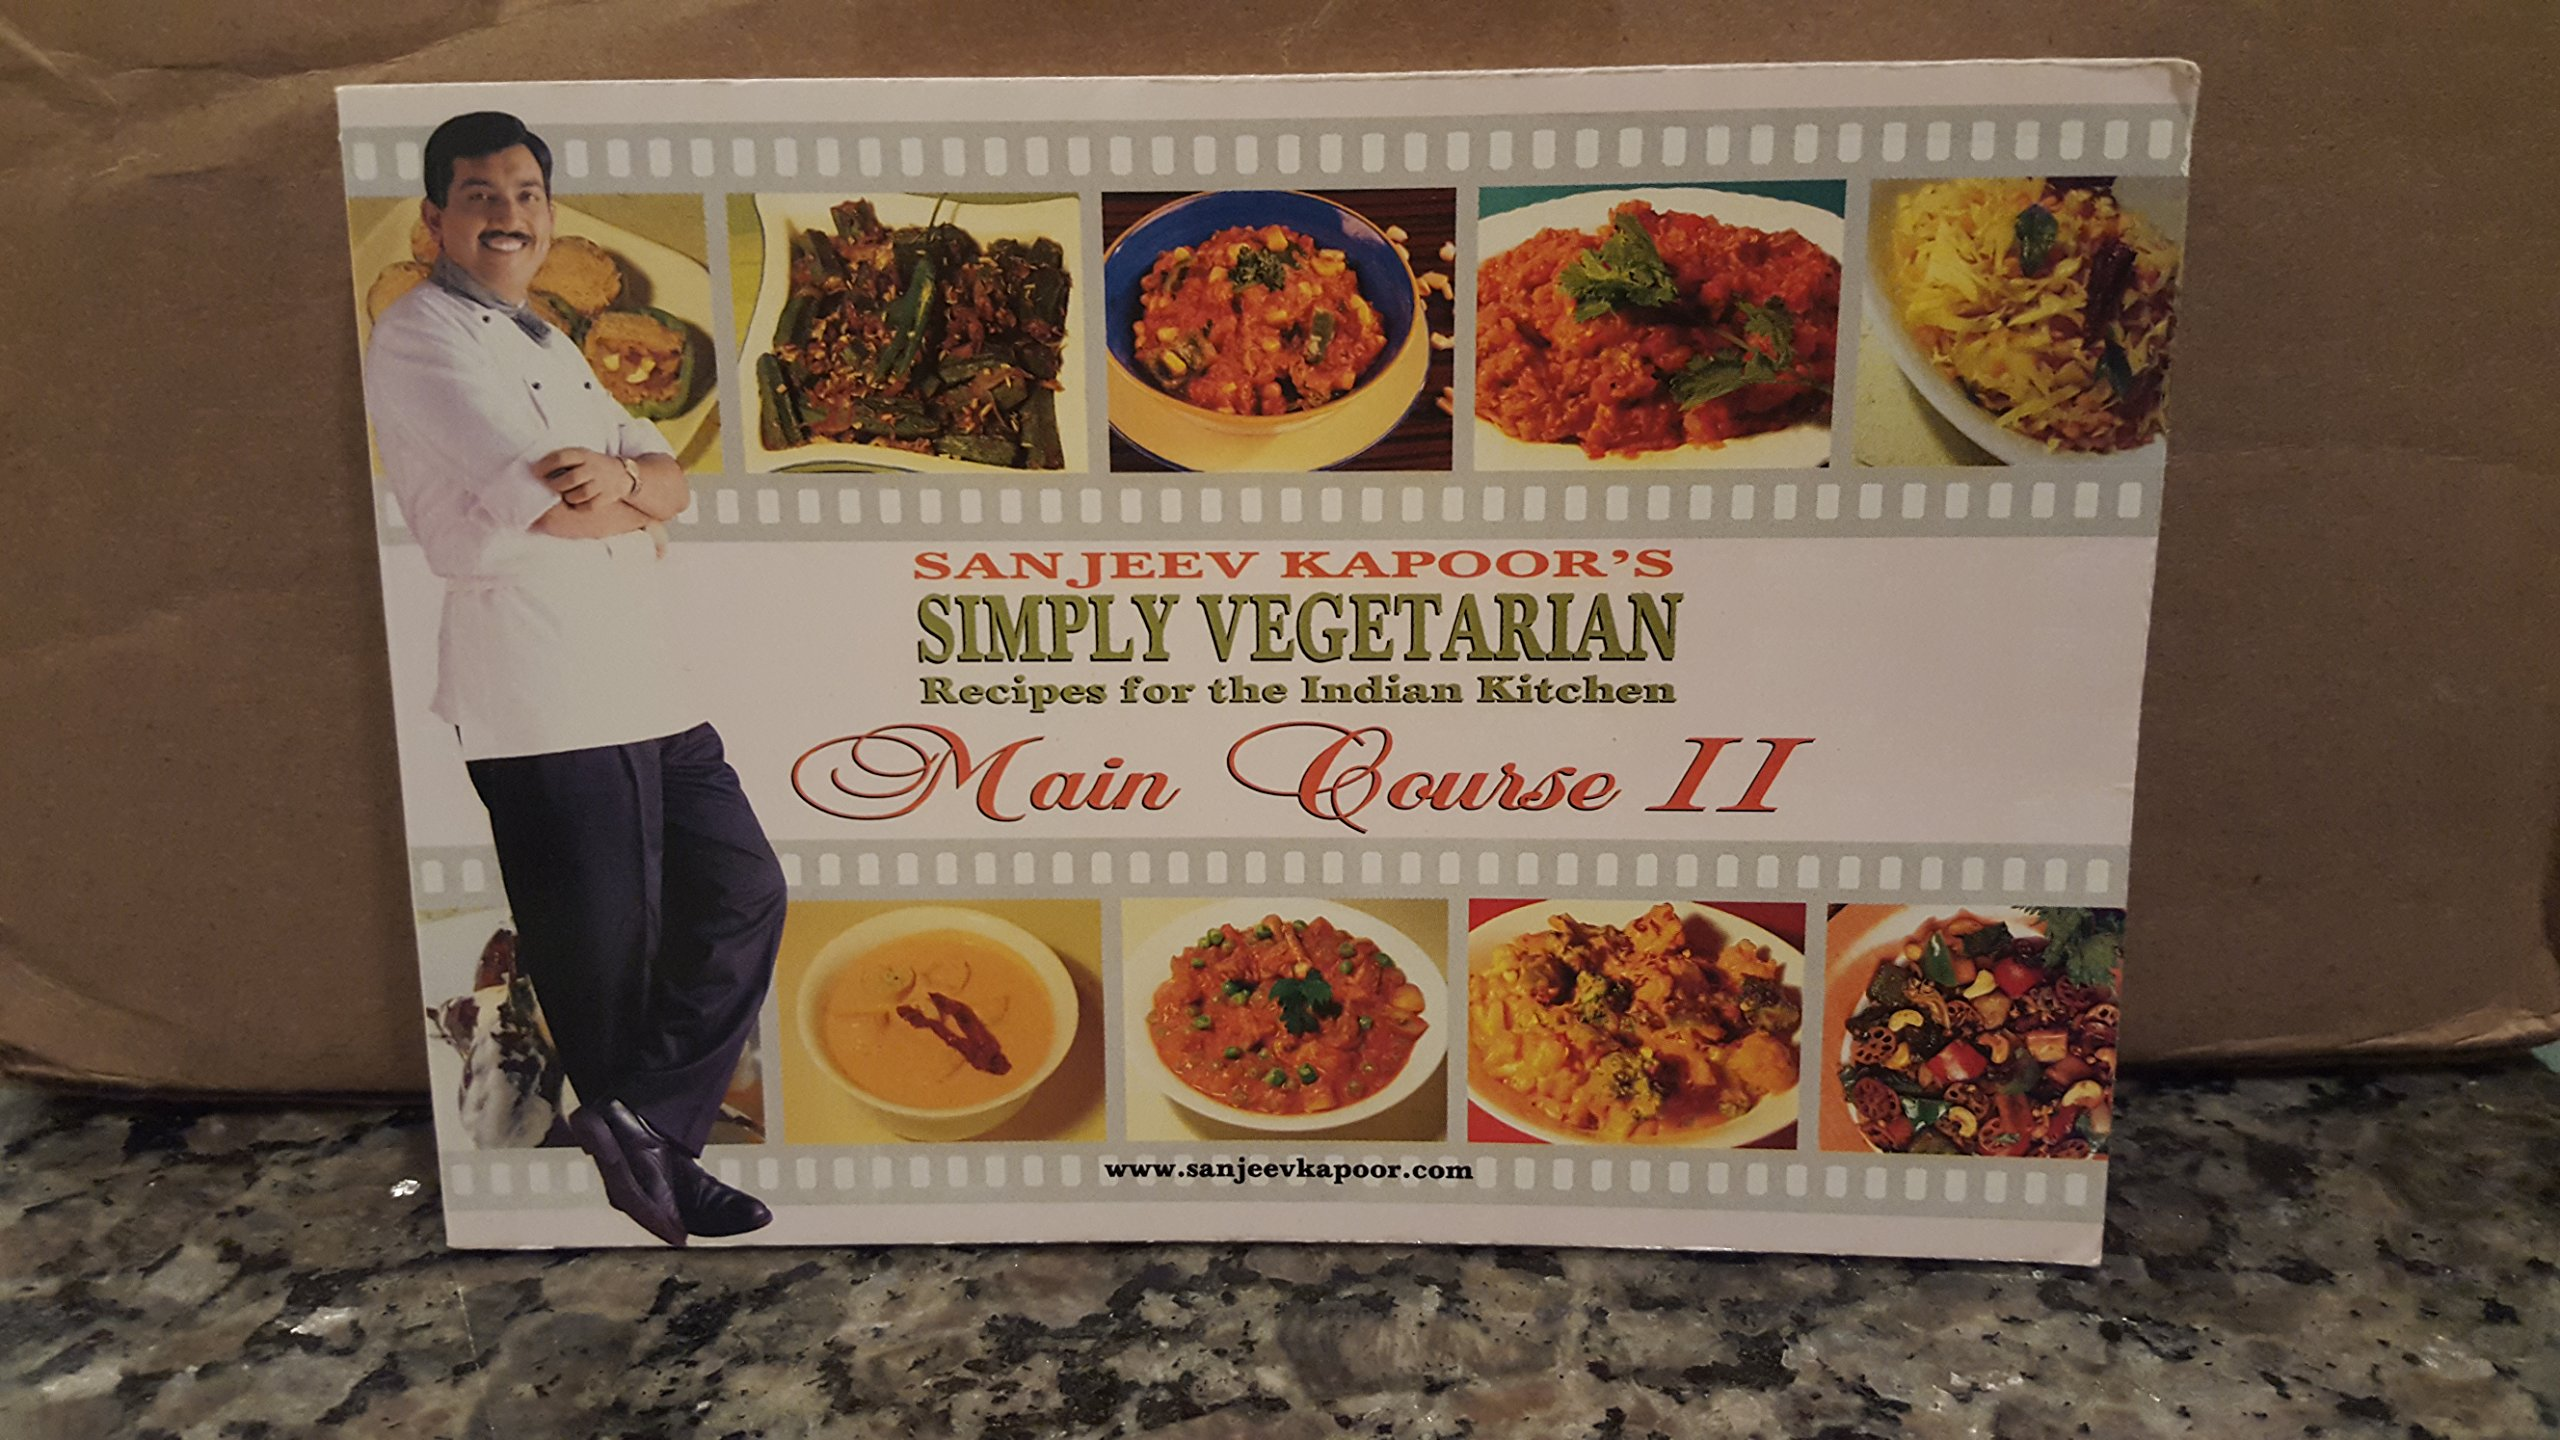 Sanjeev kapoors simply vegetarian recipes for the indian kitchen sanjeev kapoors simply vegetarian recipes for the indian kitchen main course ii sanjeev kapoor 9788179911389 amazon books forumfinder Gallery